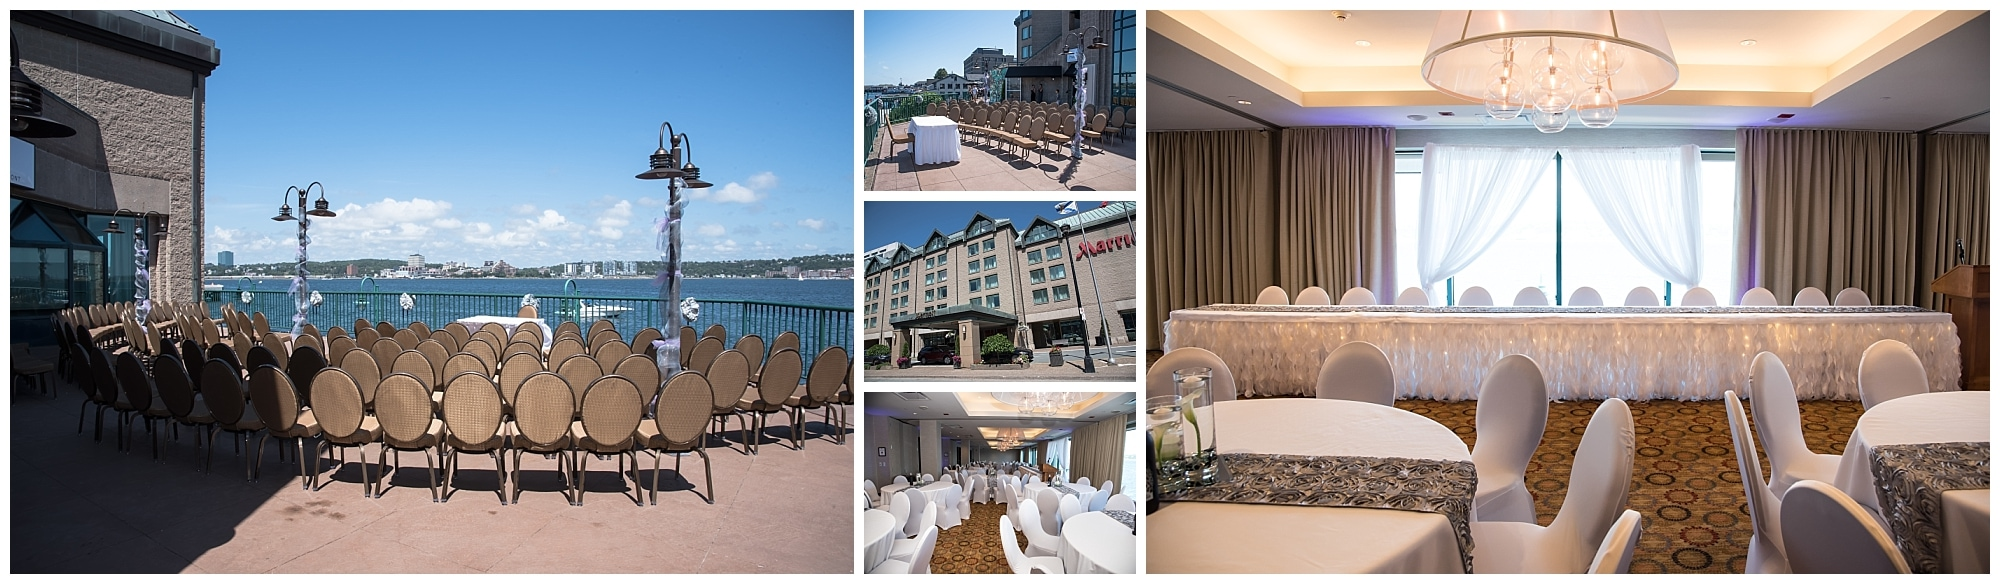 The balcony wedding ceremony and reception set up at the Halifax Marriott Harbourfront Hotel wedding venue.